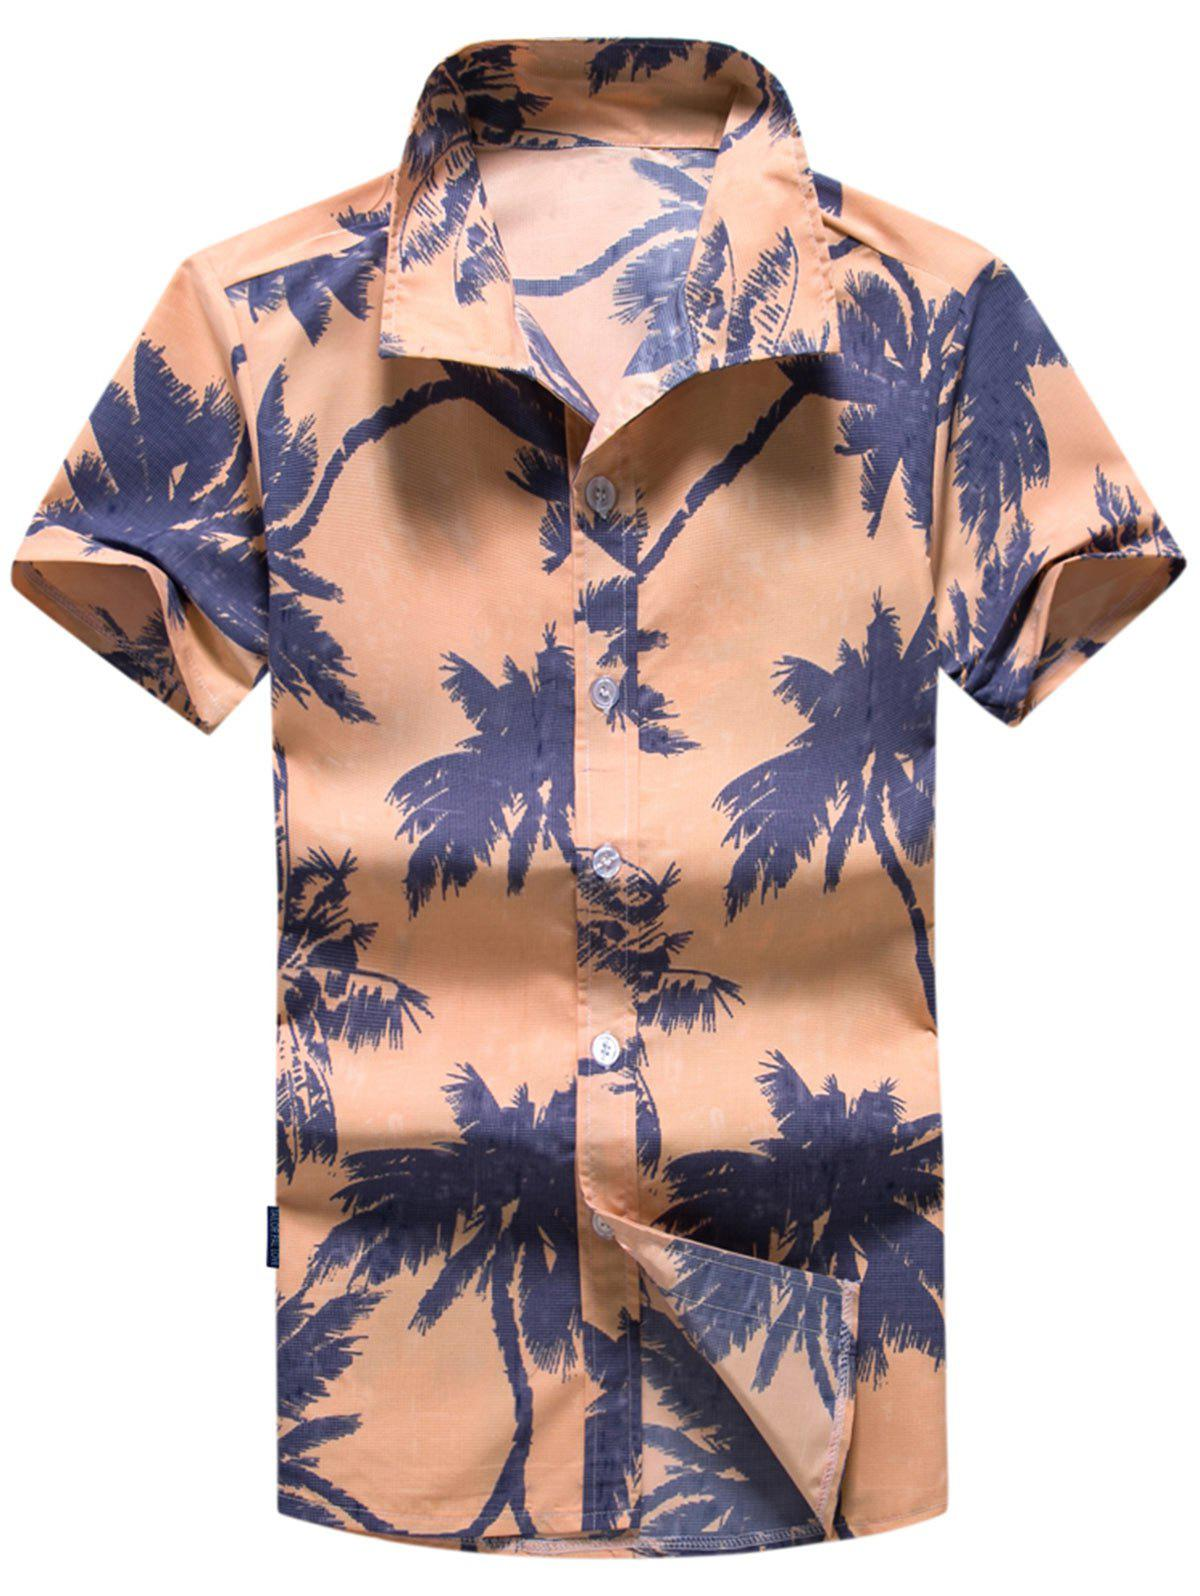 Coconut Tree Printed Short Sleeve Hawaiian Shirt clear white water resistance vacuum equipment suction cup sucker